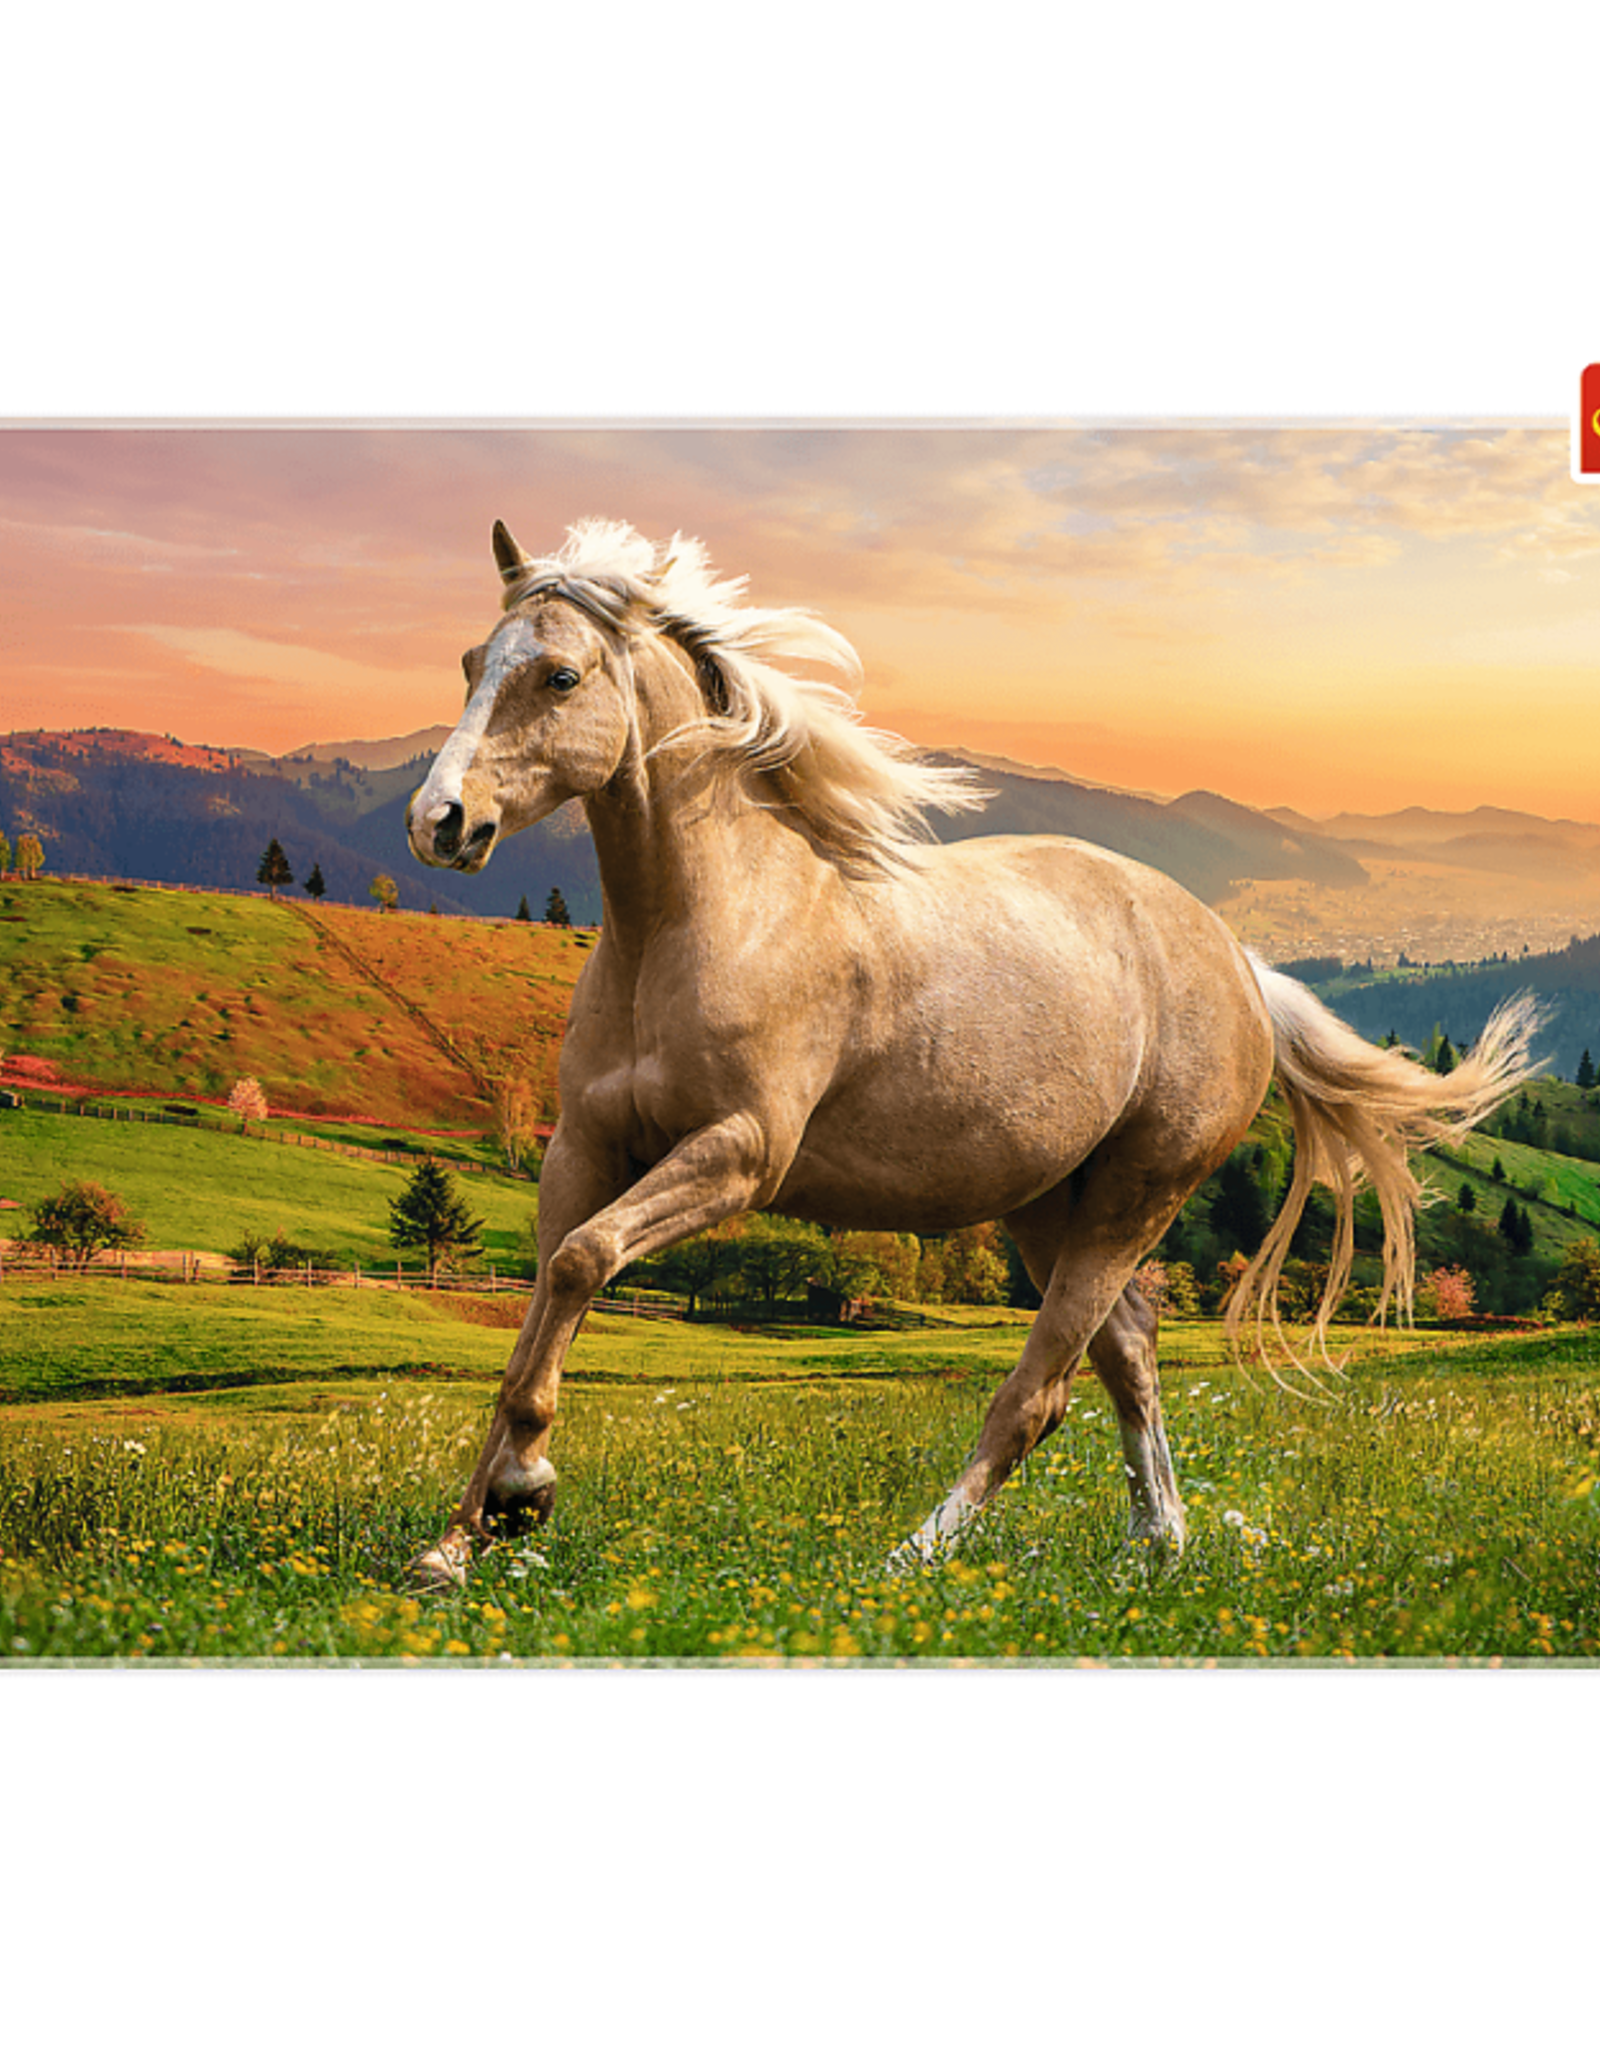 Trefl AFTERNOON GALLOP IN THE SUN 500pc 373967